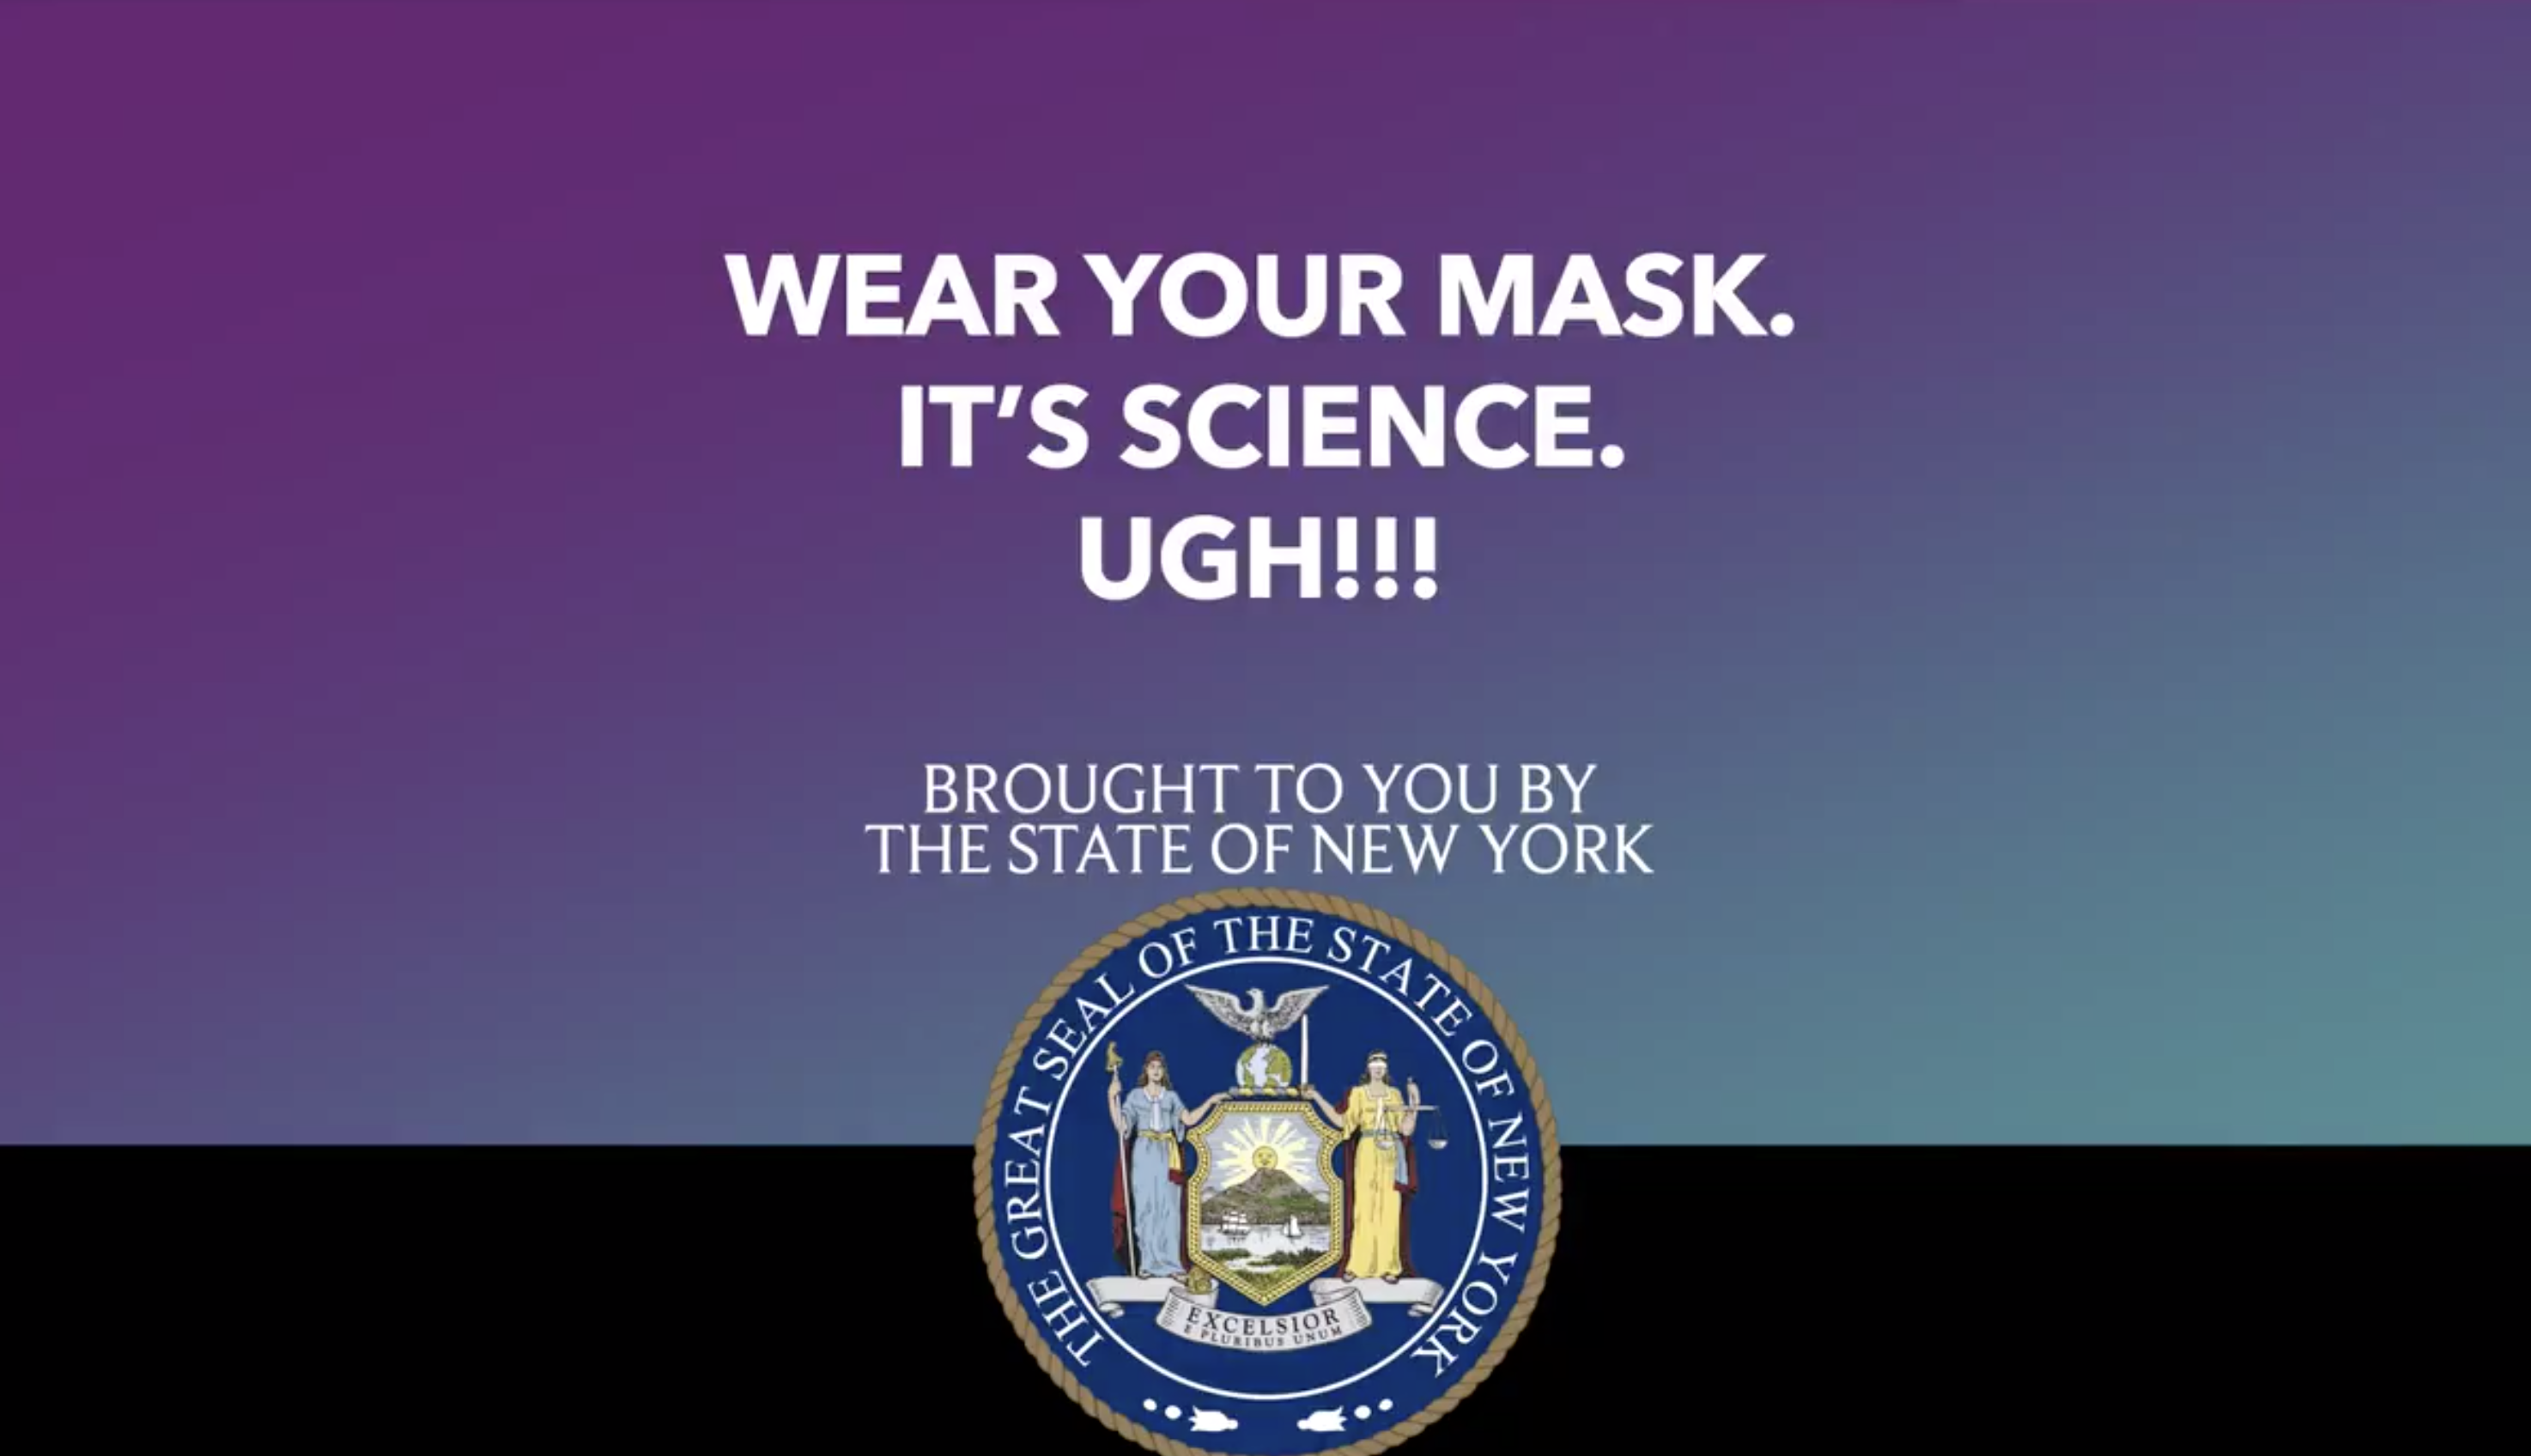 """The final frame of the video which reads, """"Wear your mask, it's science, UGH! Brought to you by the state of New York"""""""